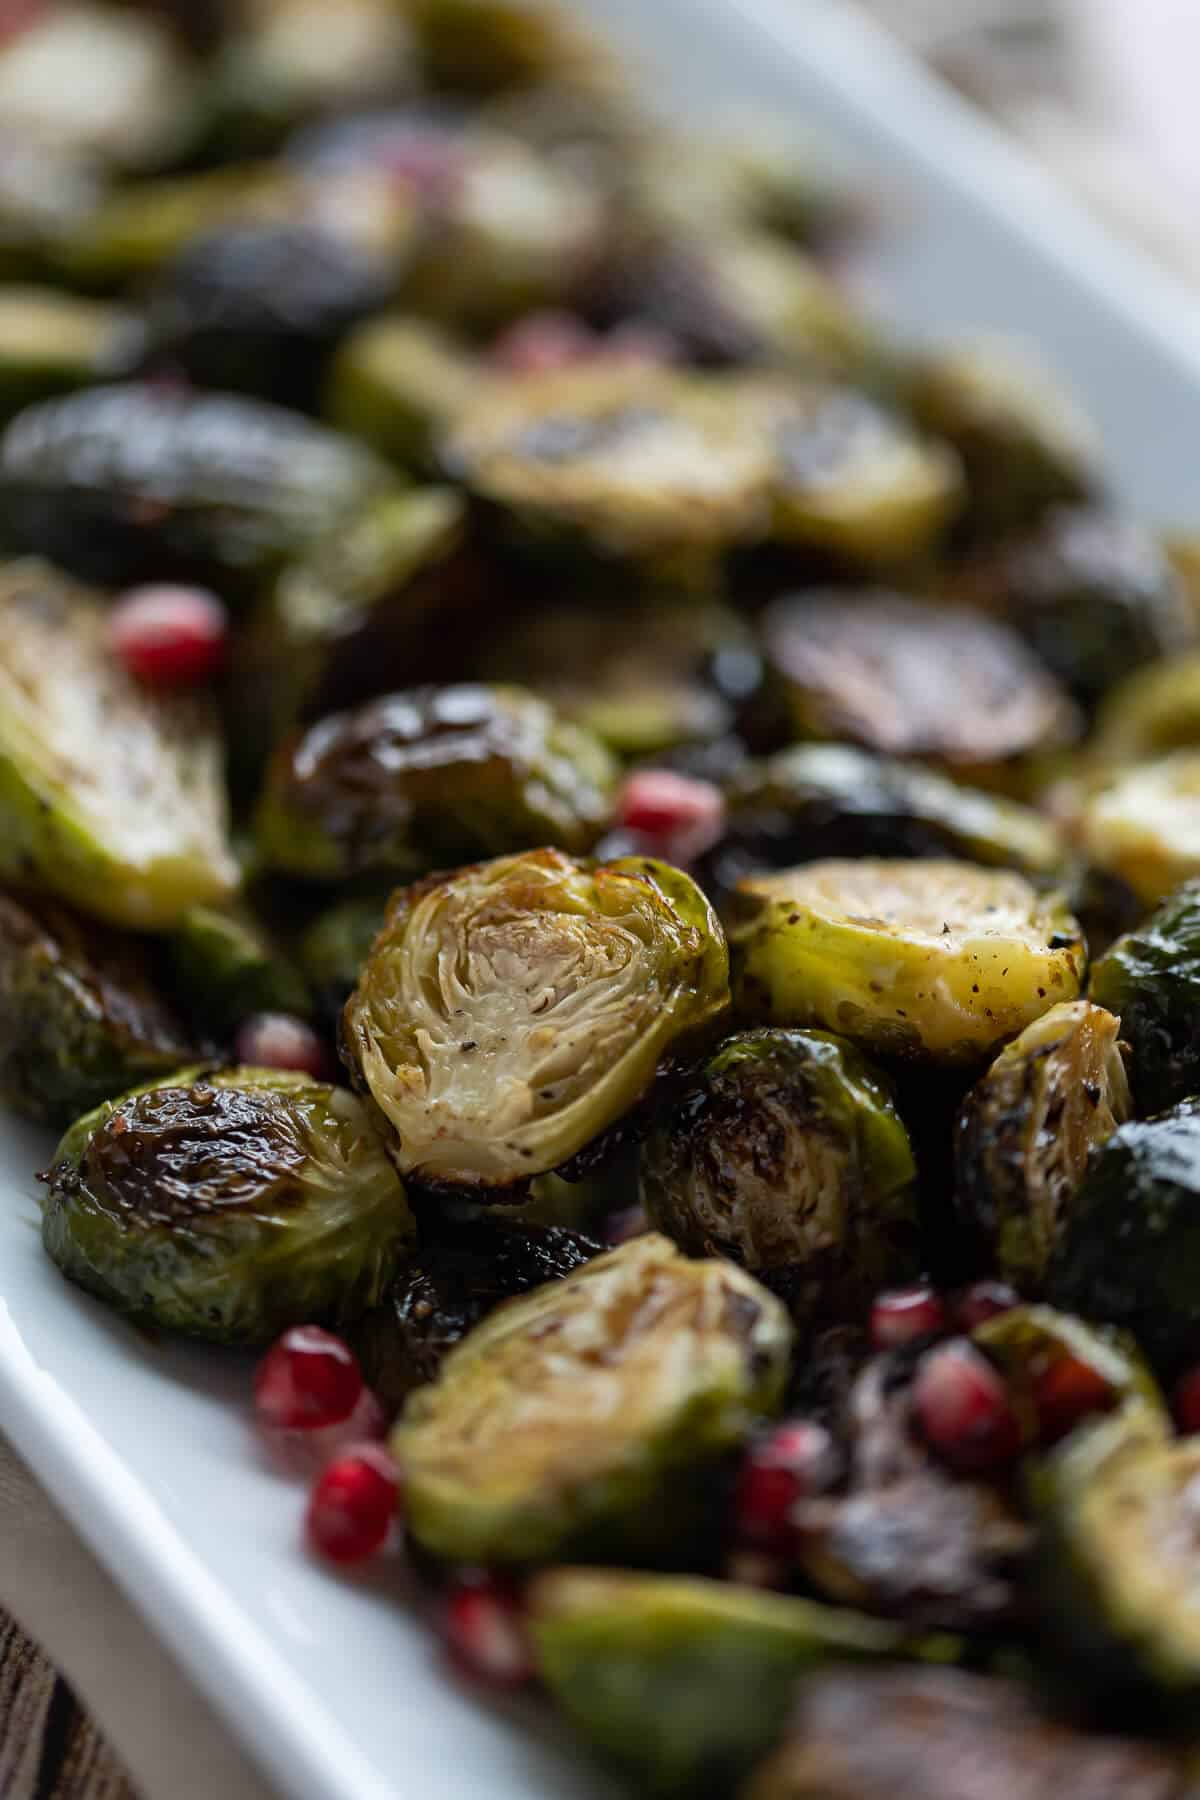 Close up picture of roasted brussels sprouts caramelized on a platter.